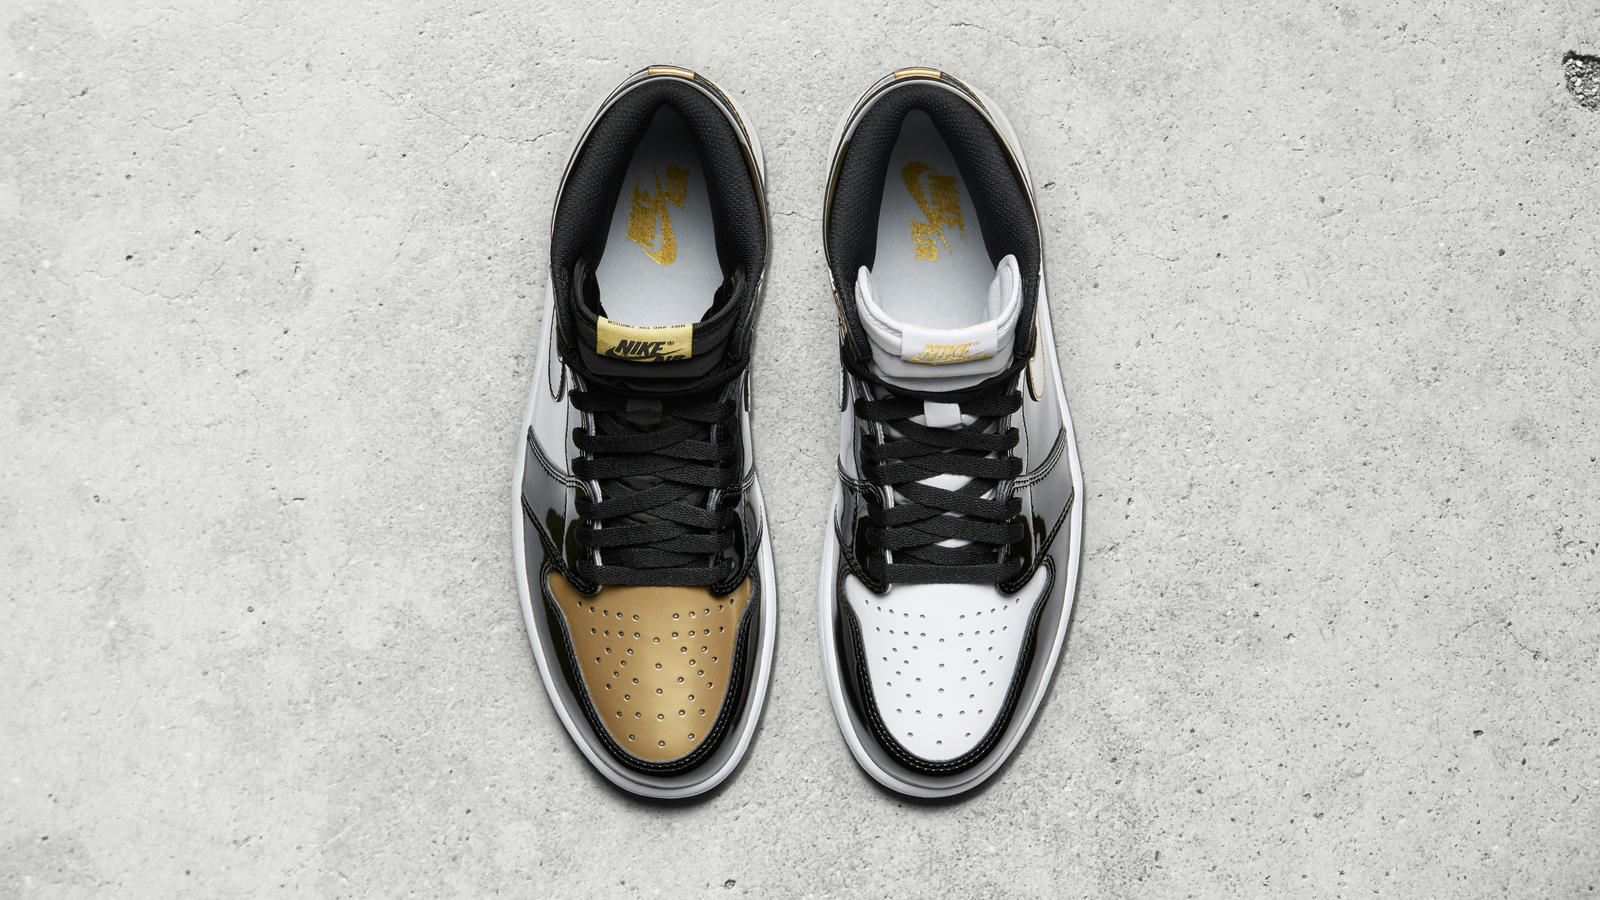 Gold jordan 1 top 3 03 hd 1600